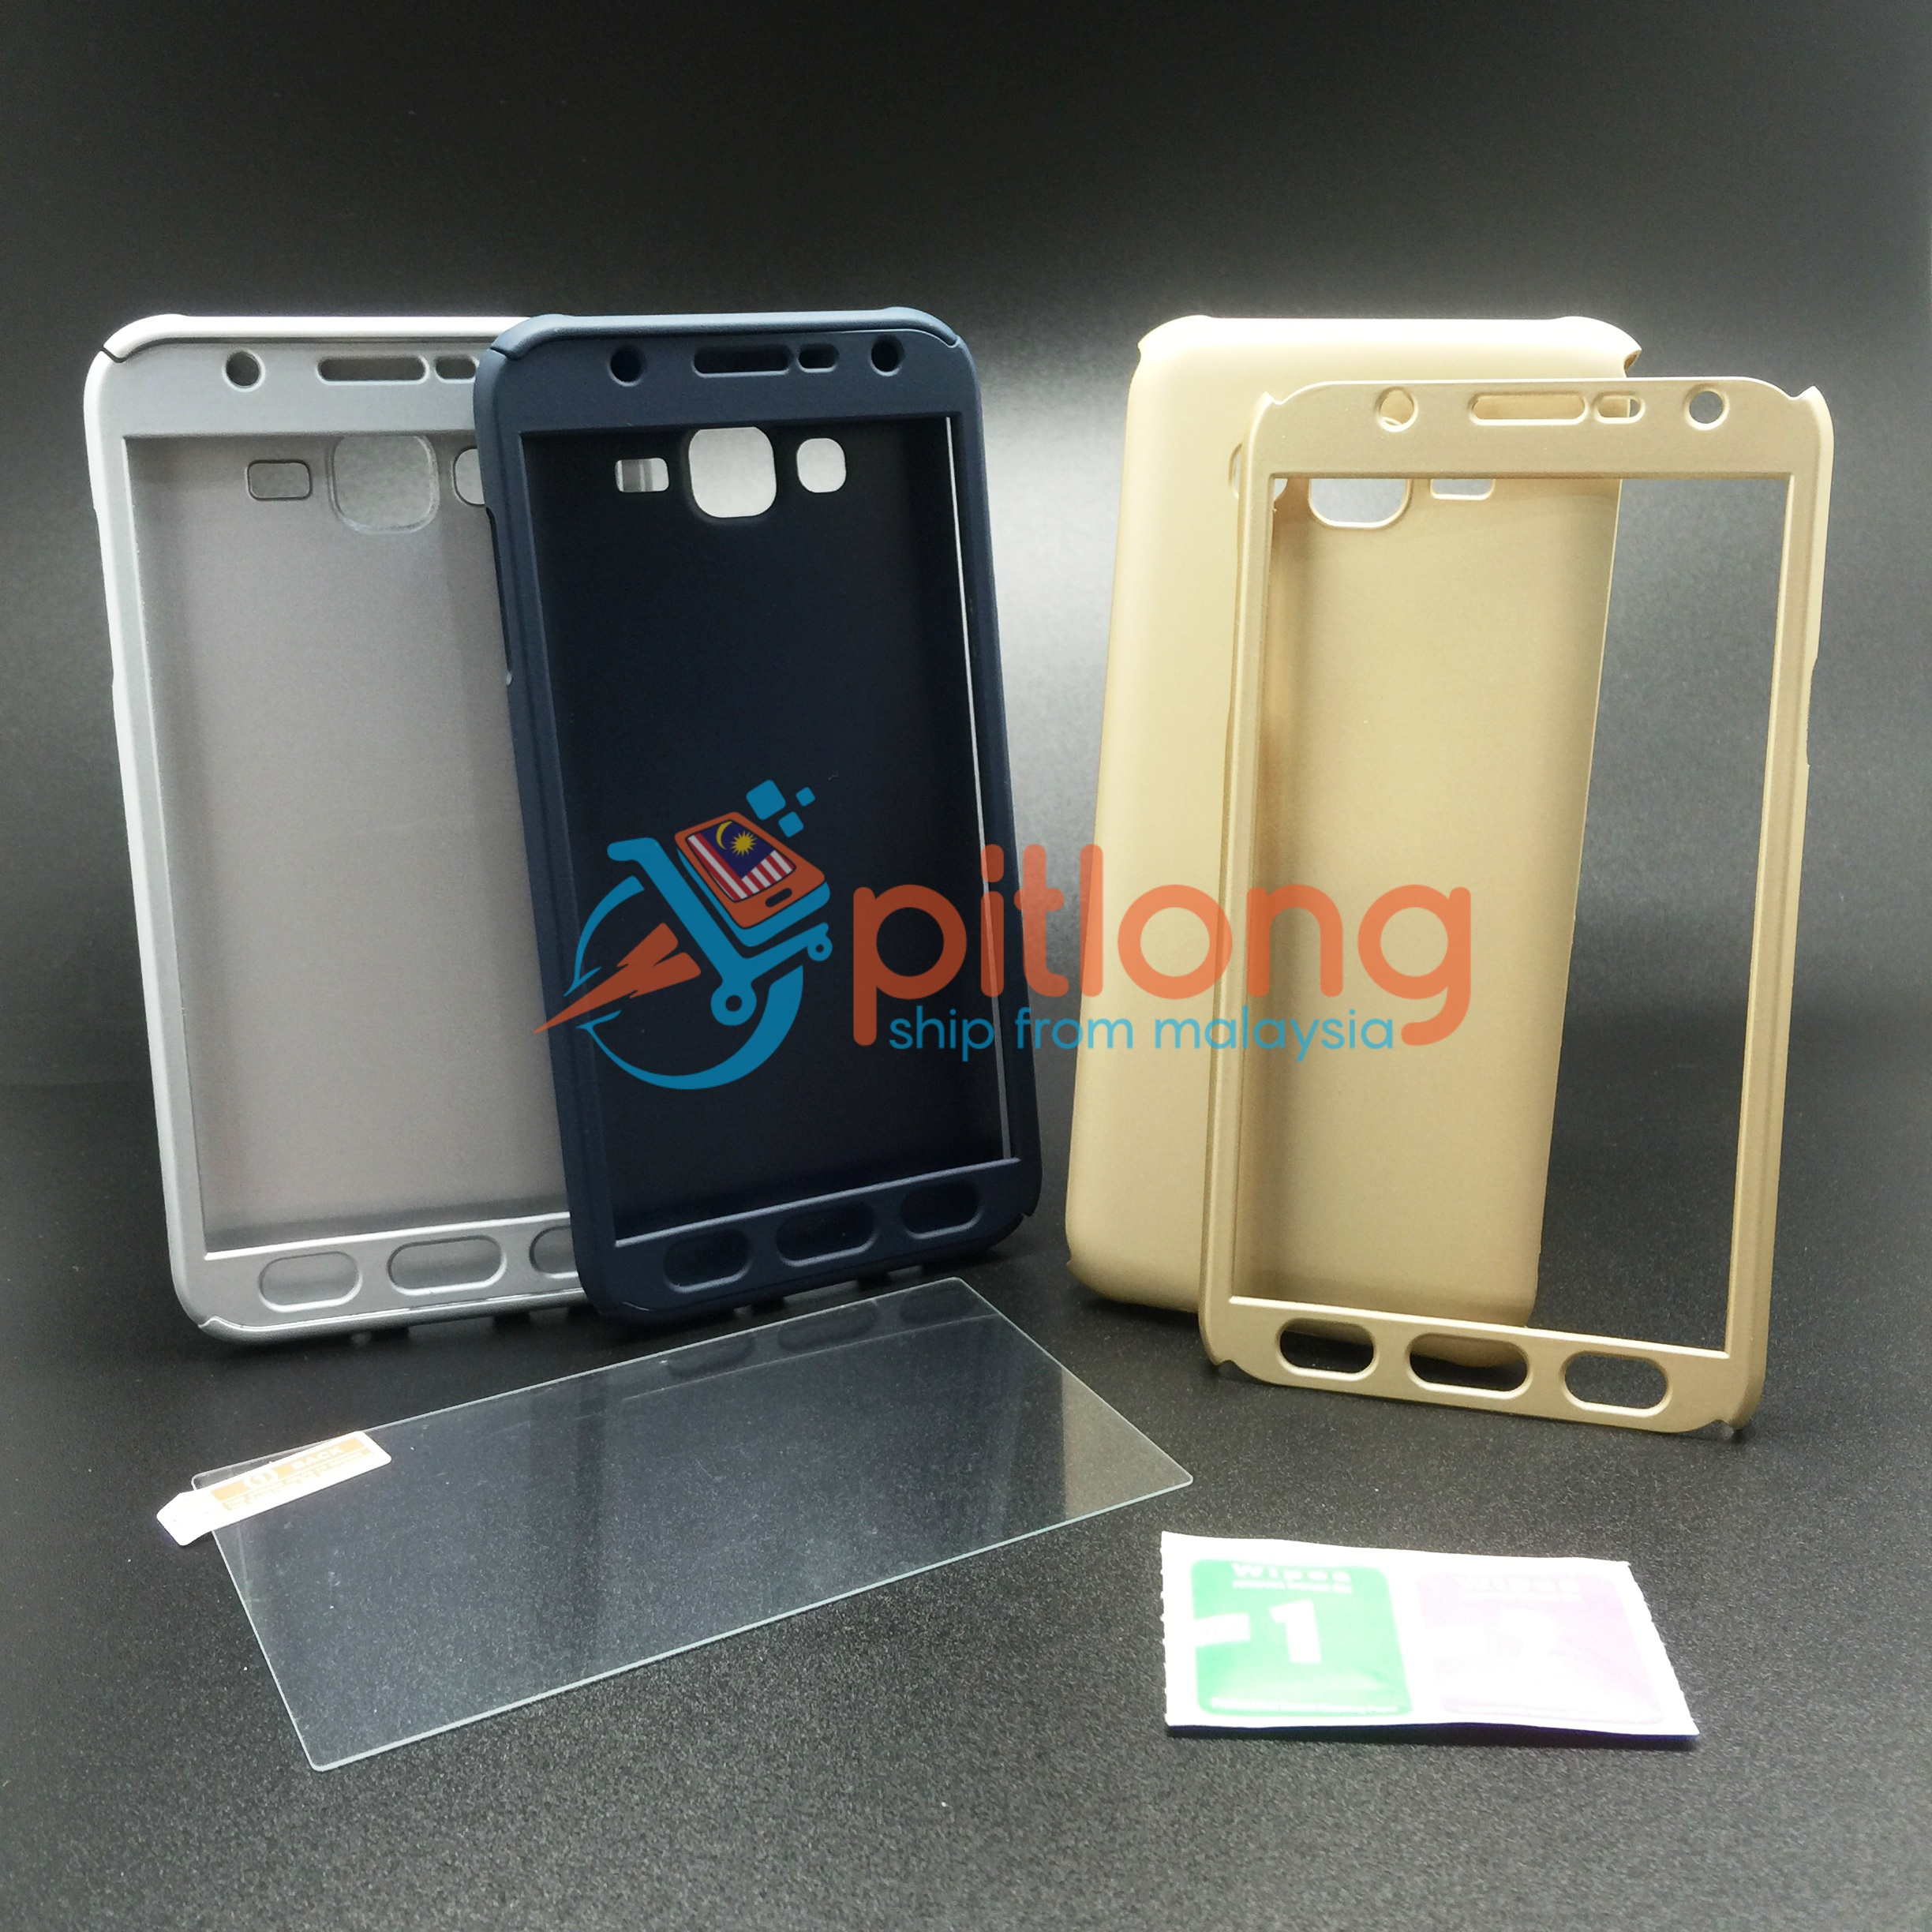 Samsung Galaxy J5 2015 J500 360 Fu End 12 28 2020 1200 Am Full Cover Case Free Tempered Glass Gold